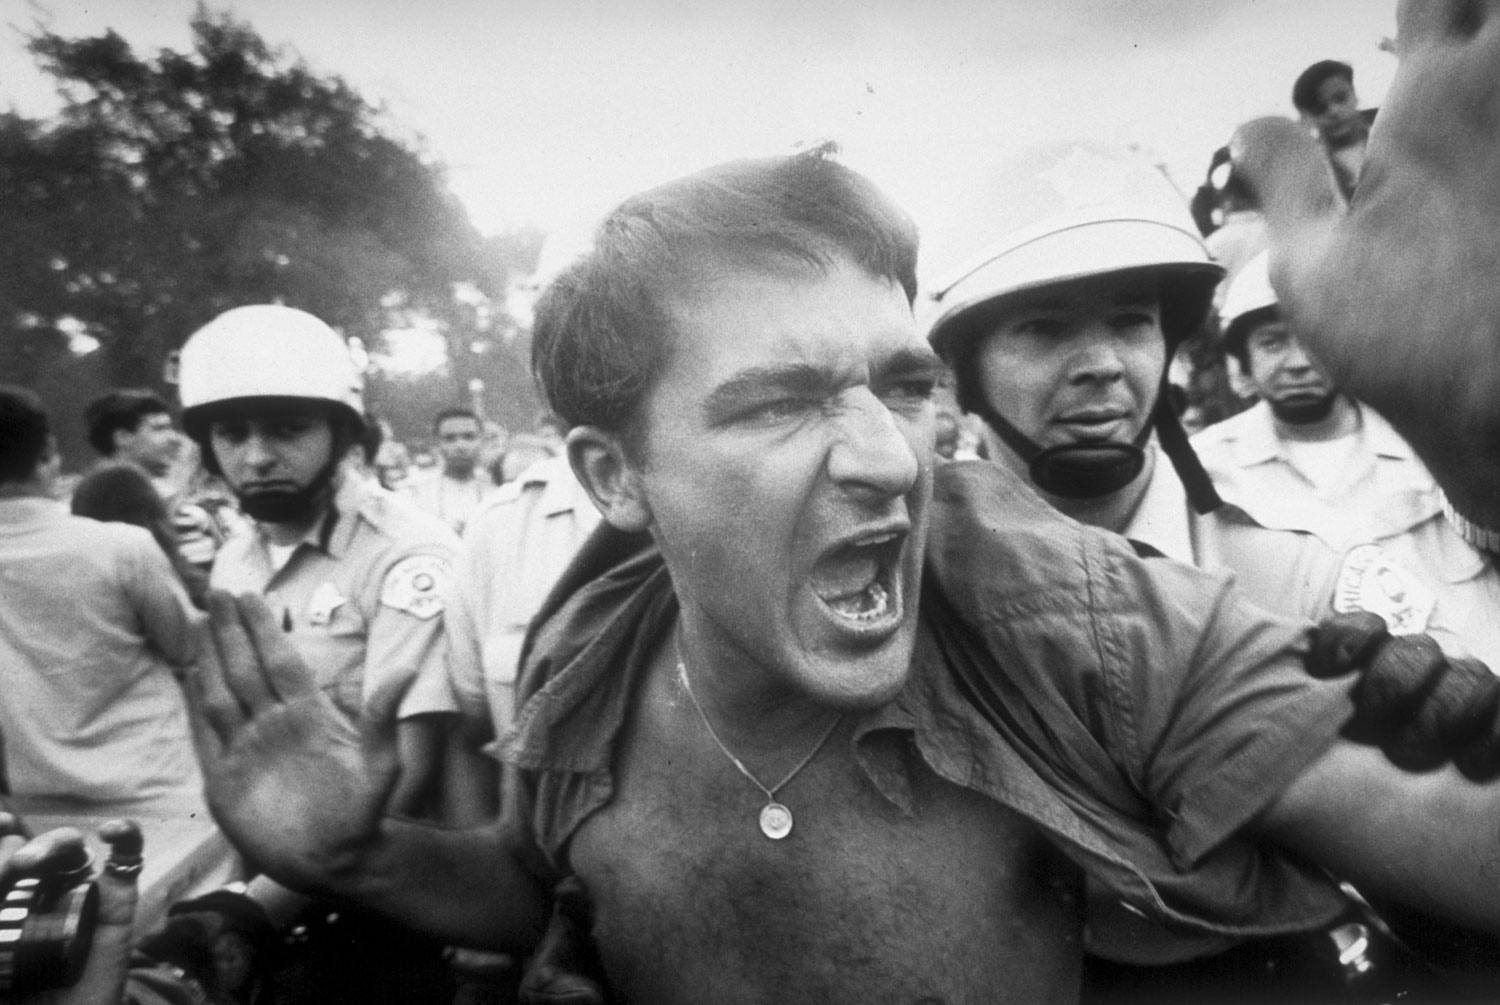 A protestor is grabbed by police during a demonstration outside the Democratic National Convention in Chicago, 1968.